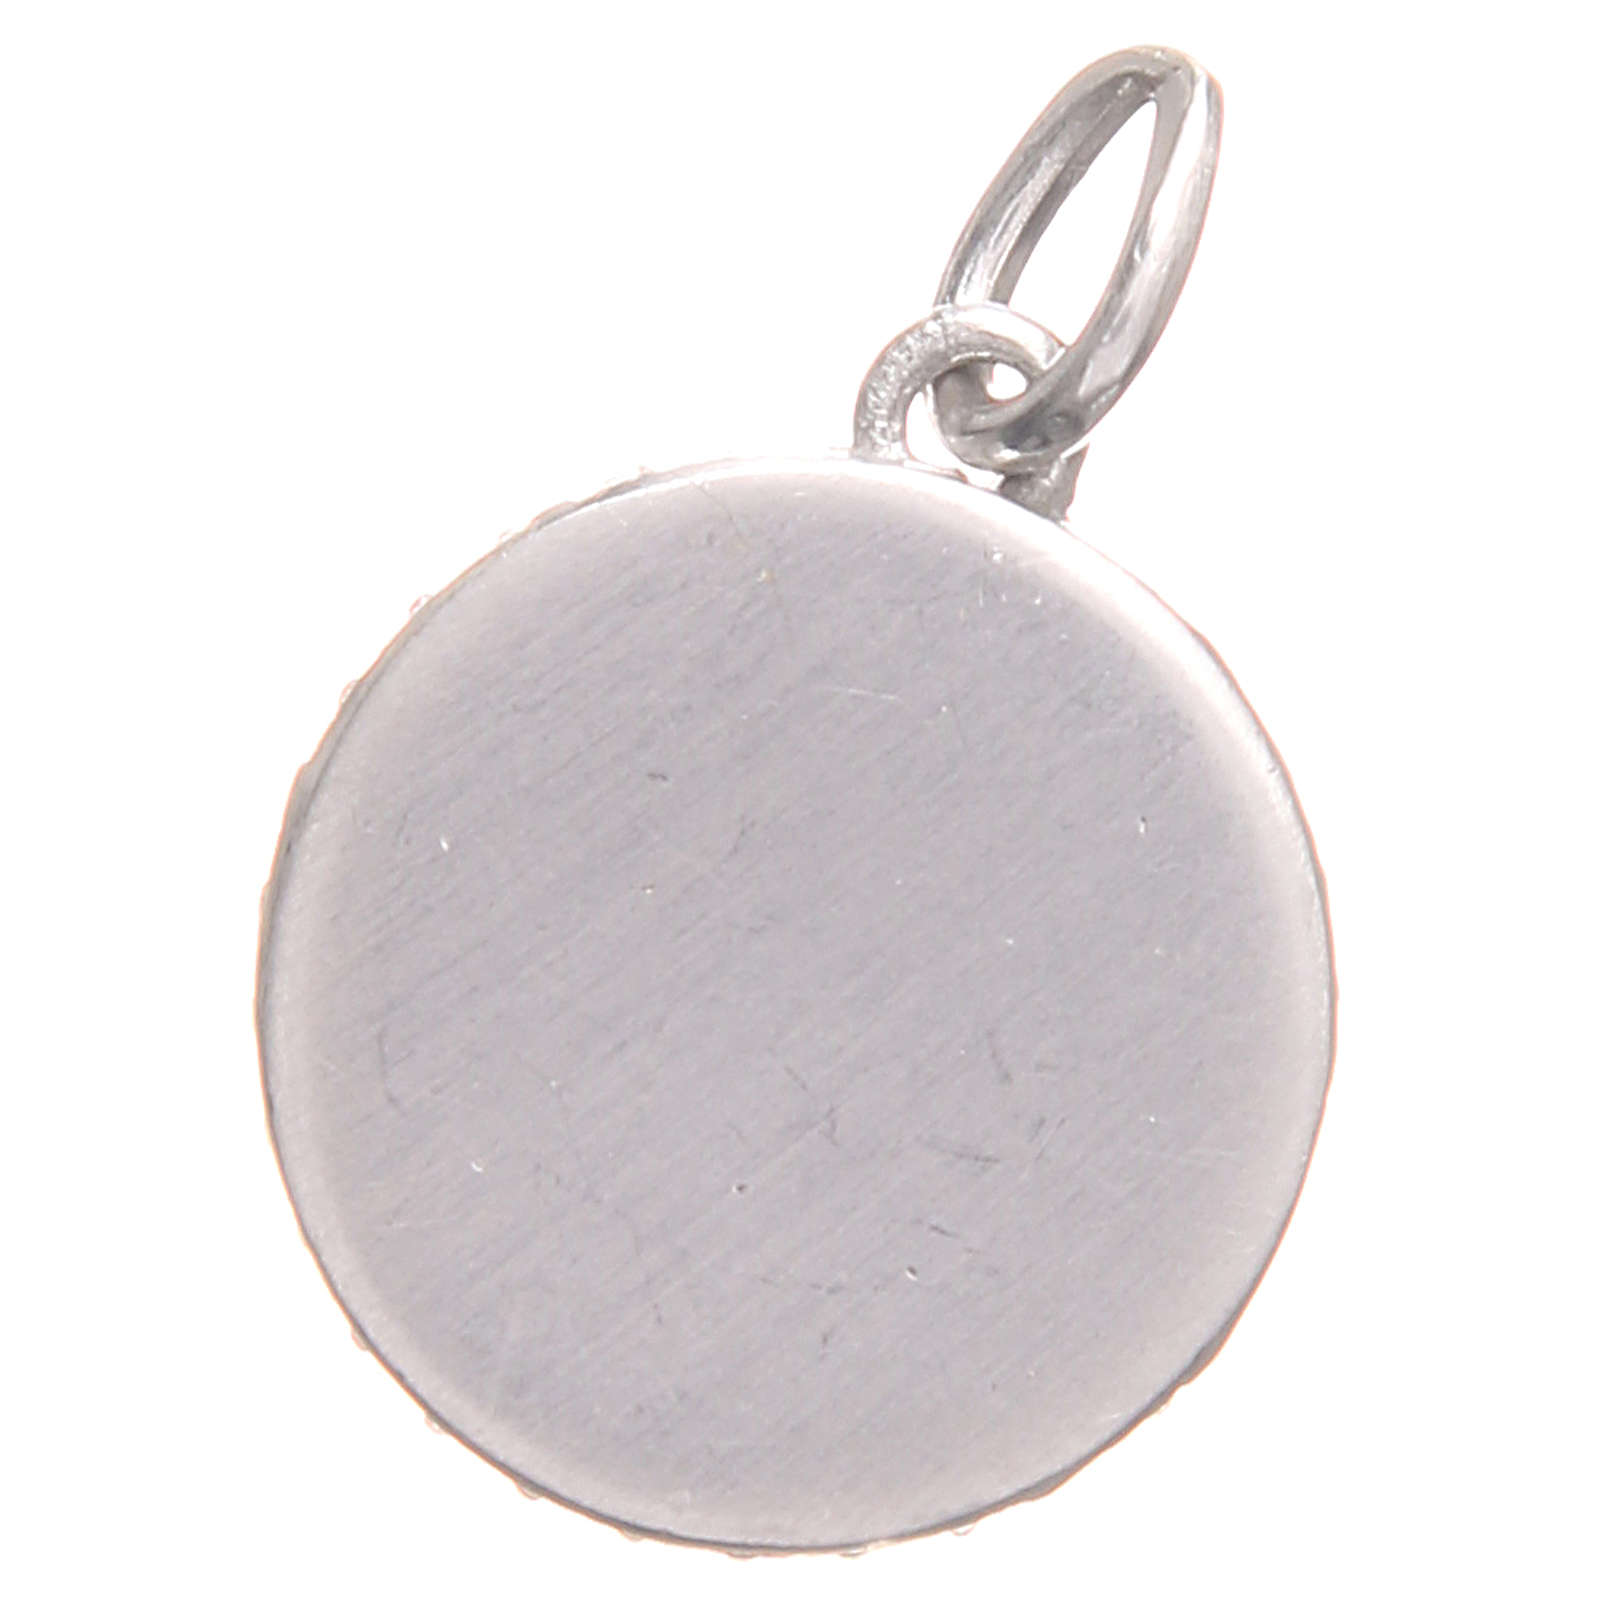 Pendant charm in 800 silver with Saint Benedict Cross 1.7x1.7cm 4